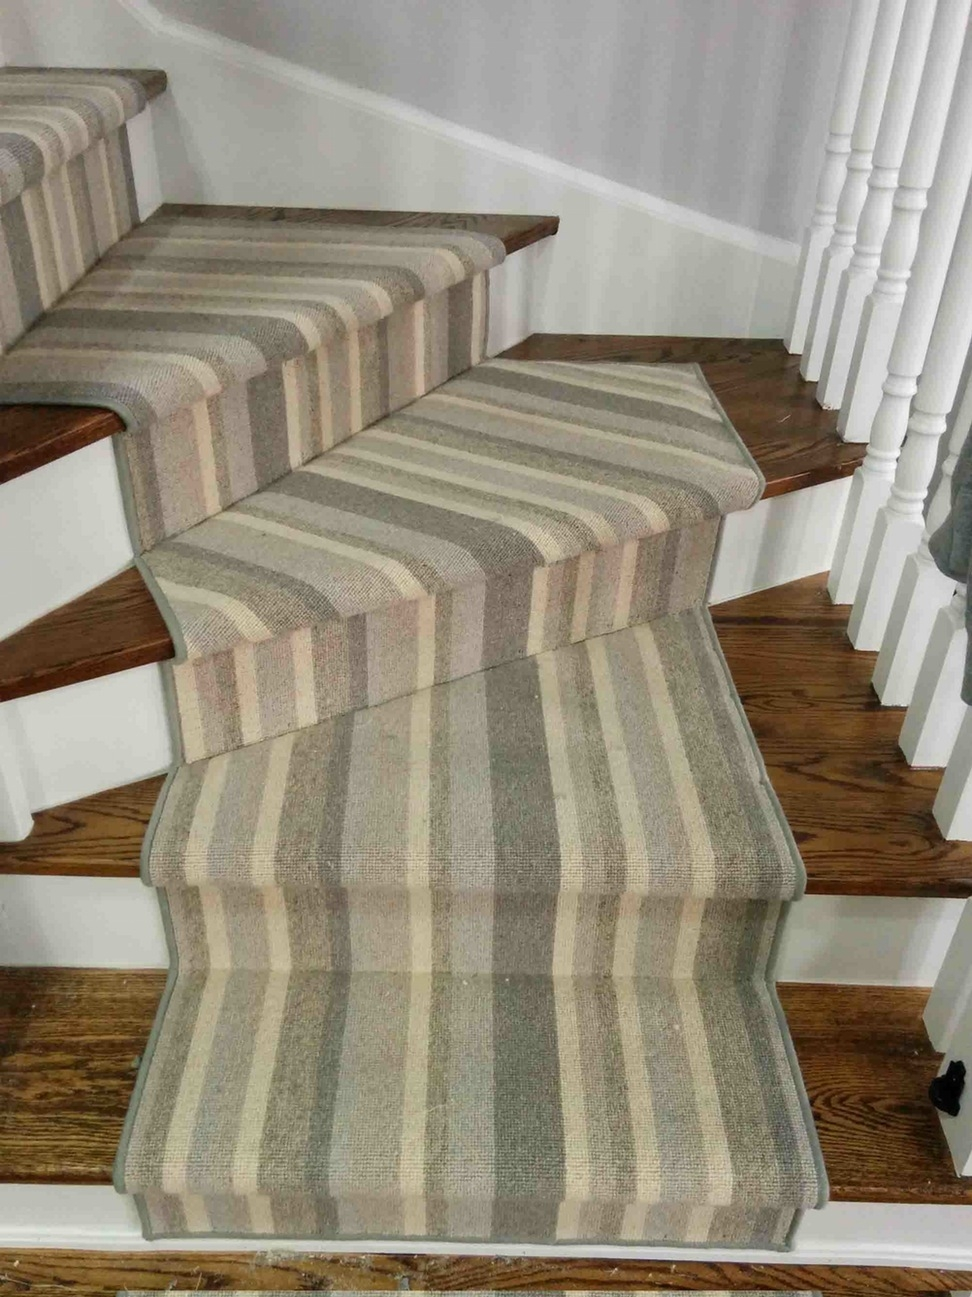 Carpet Runner For Stairs Cheap Removing Carpet From The Stairs For Striped Hallway Runners (#8 of 20)